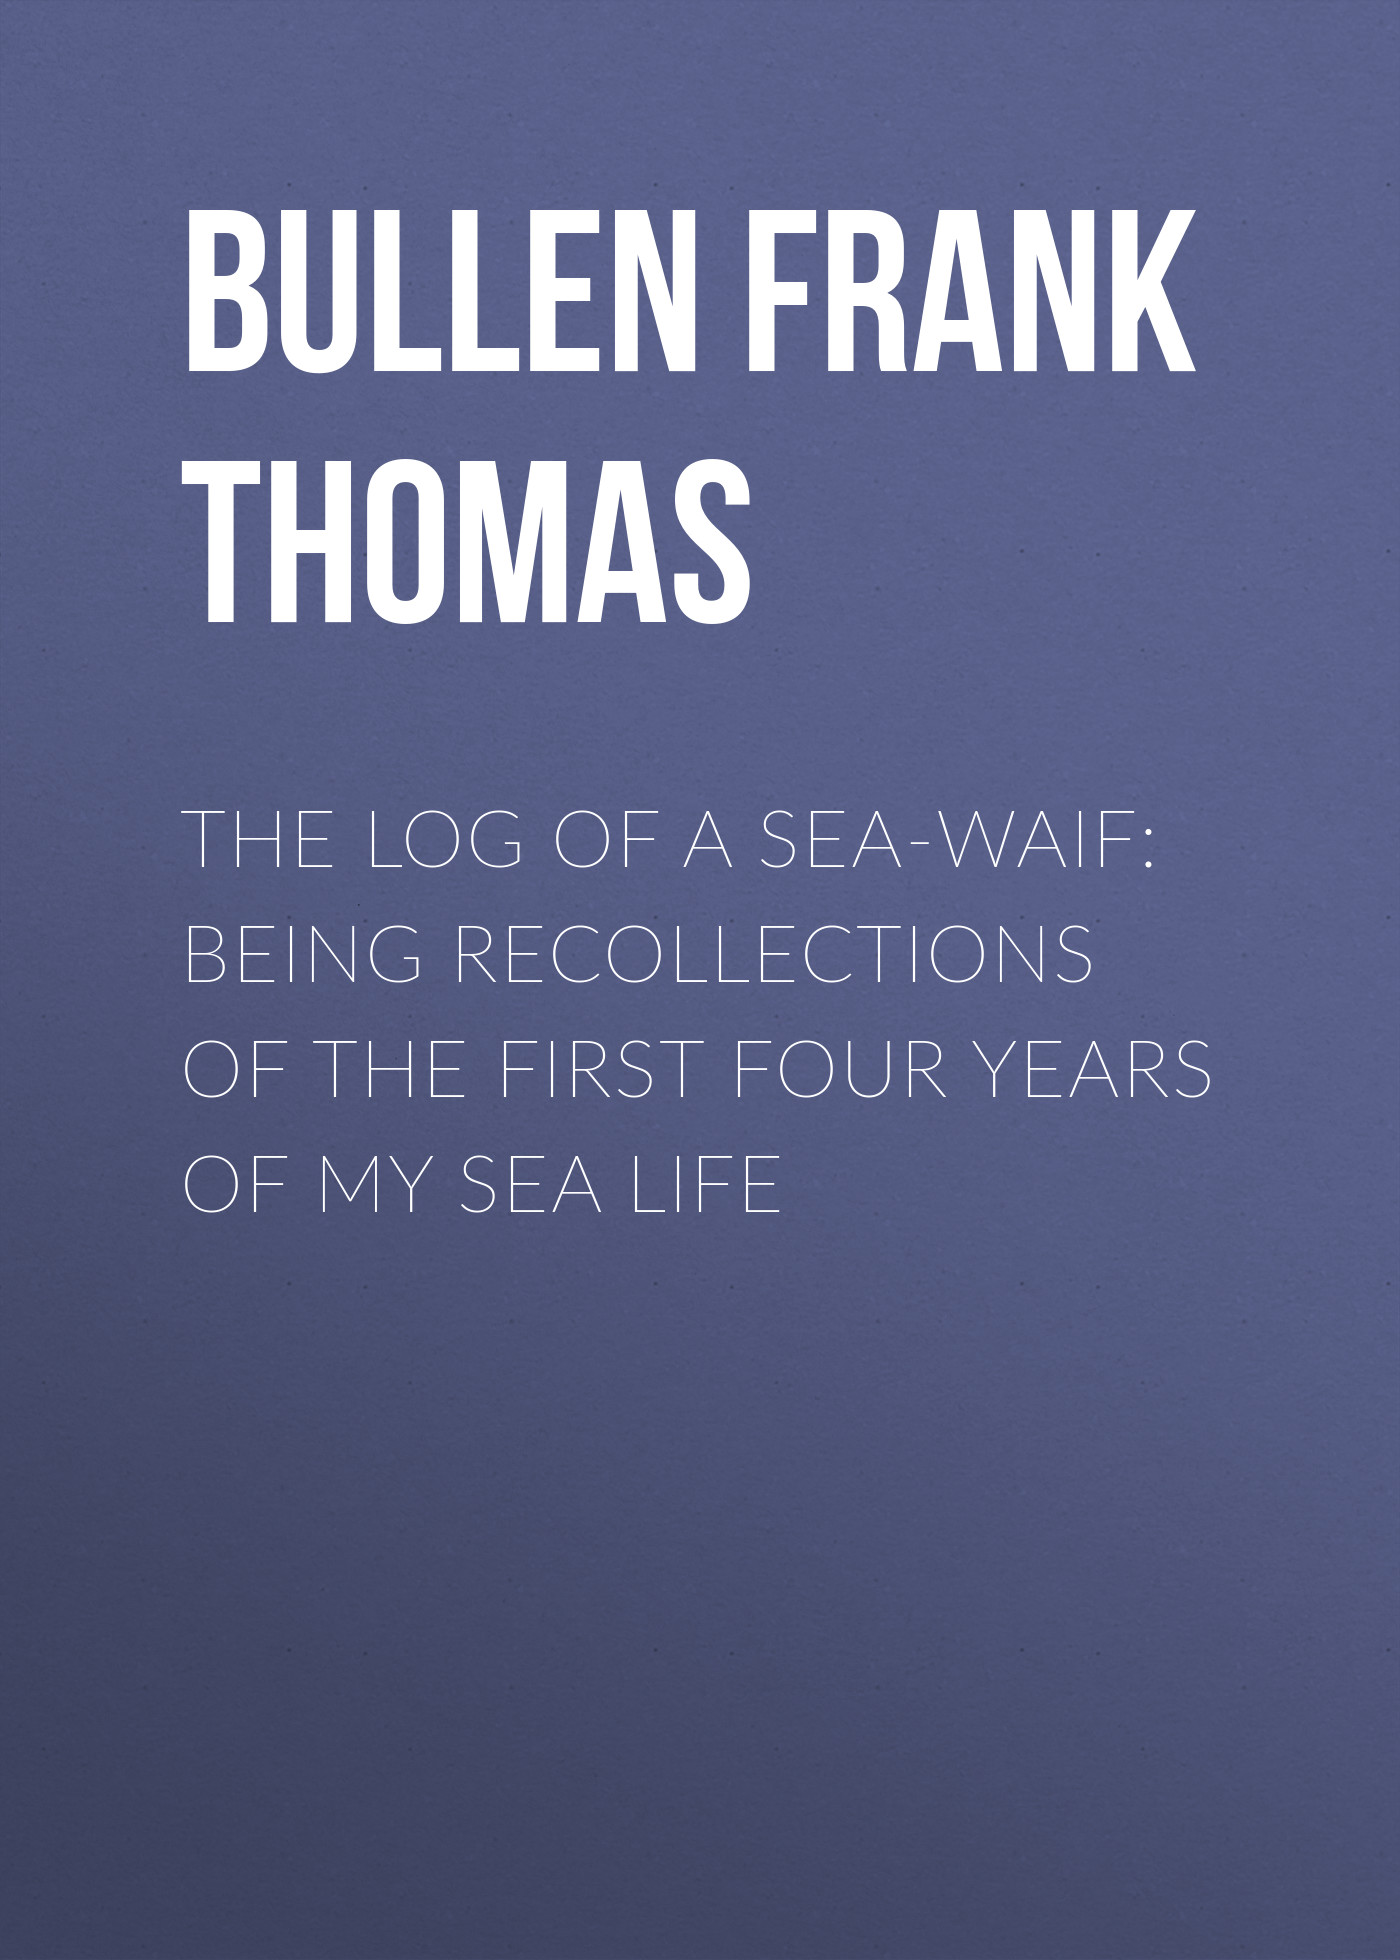 Bullen Frank Thomas The Log of a Sea-Waif: Being Recollections of the First Four Years of My Sea Life aegean sea scenery sea tree beach 3d wallpaper tv background wallpaper the living room sofa backdrop mural